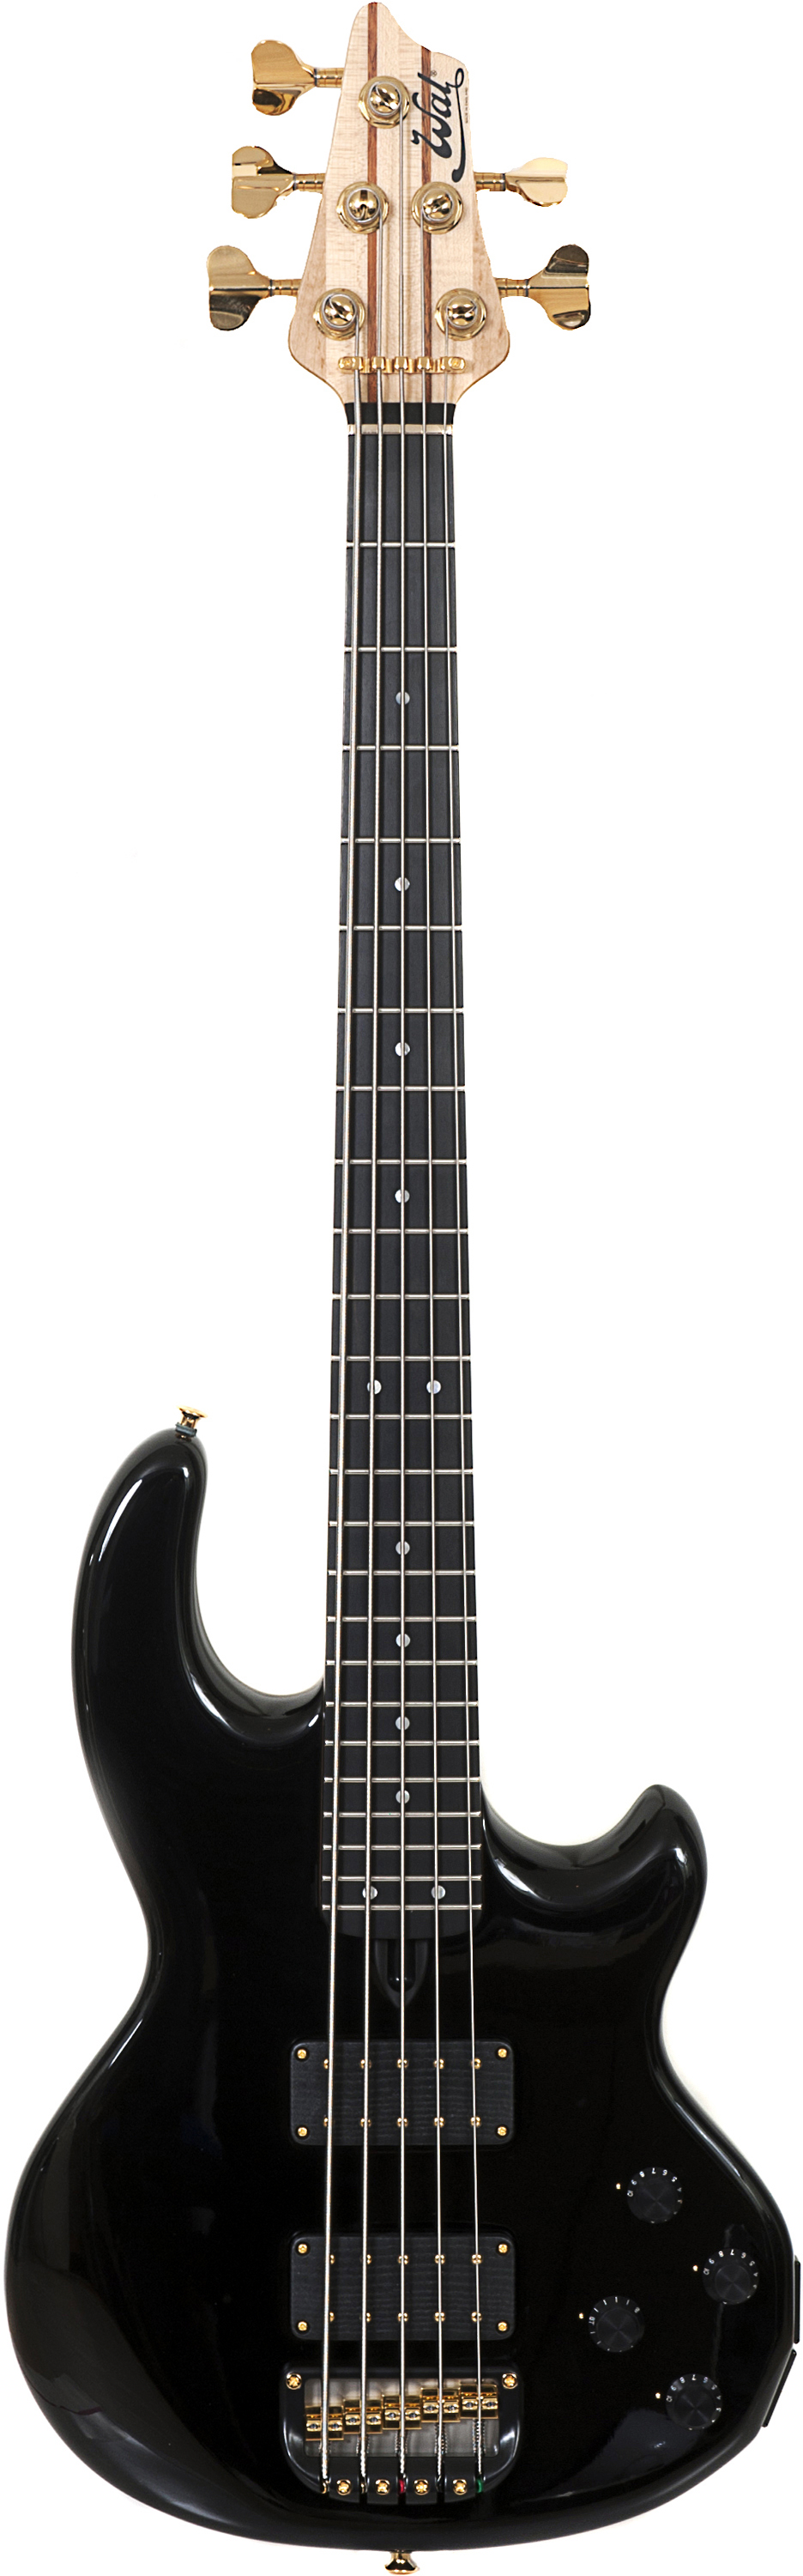 5-string Mk2 with gloss black body finish, a fretted ebony fingerboard and gold hardware.